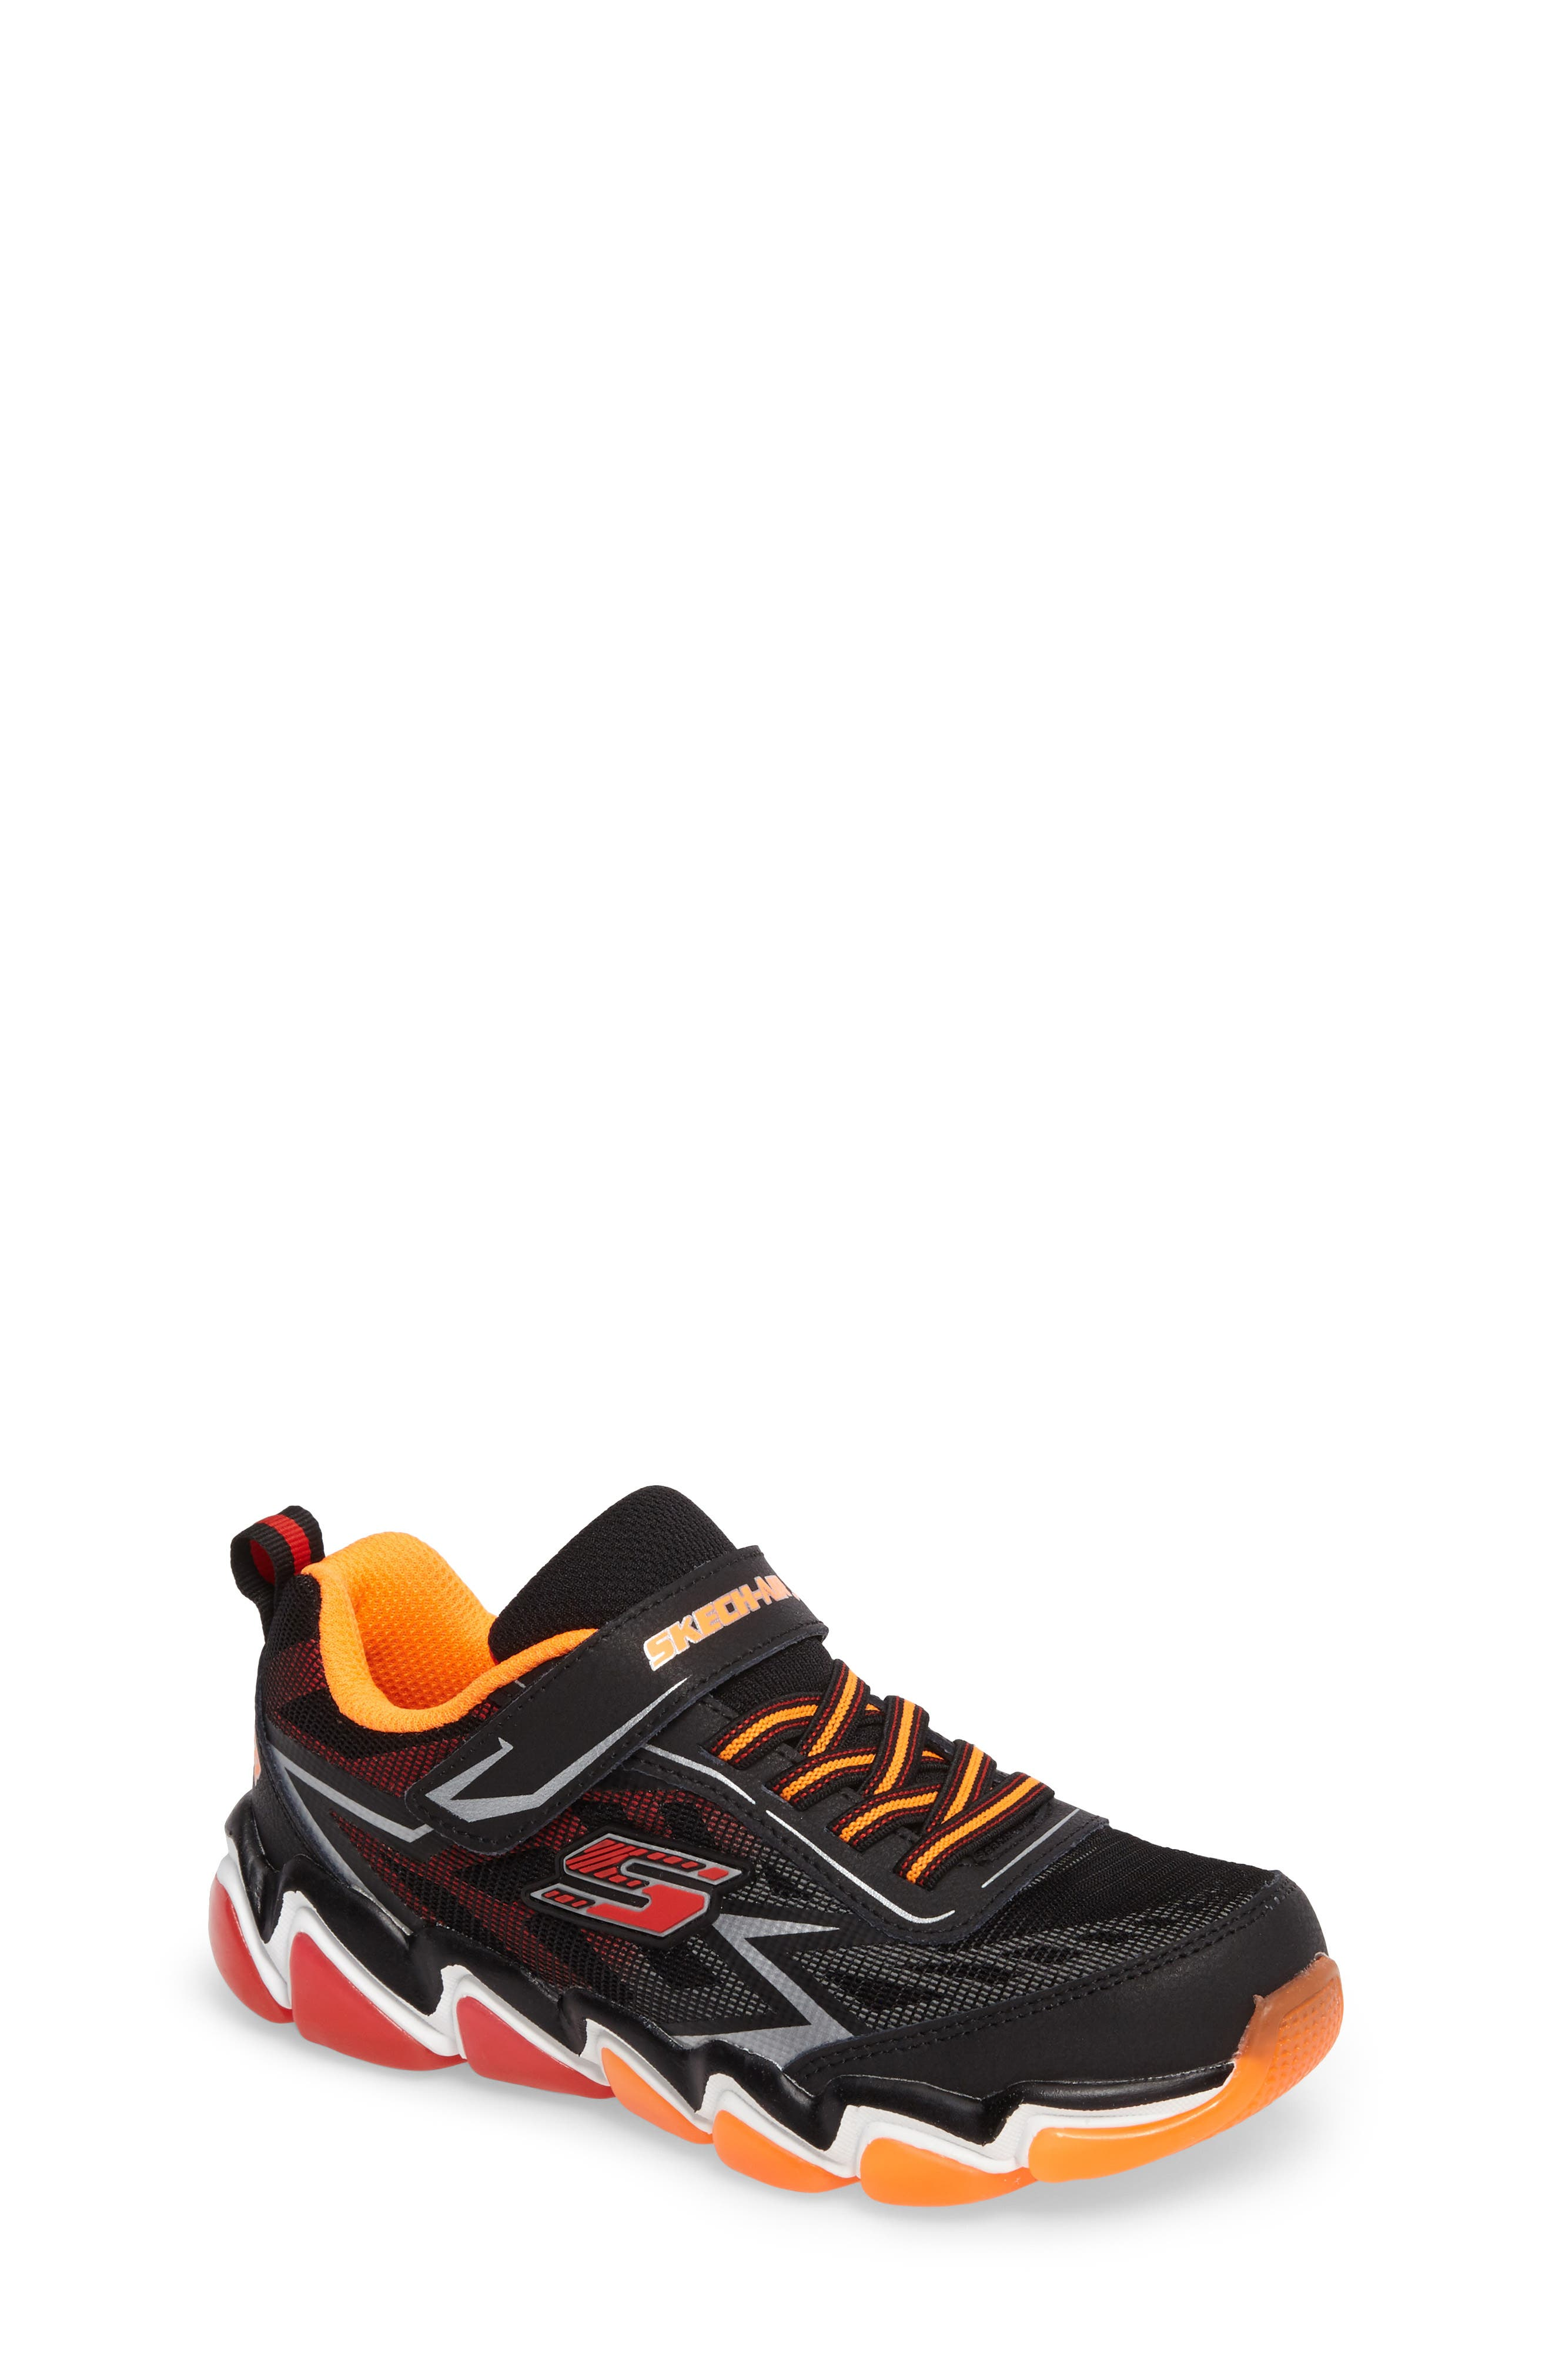 SKECHERS Skech-Air 3.0 Downswitch Sneaker (Toddler, Little Kid & Big Kid)